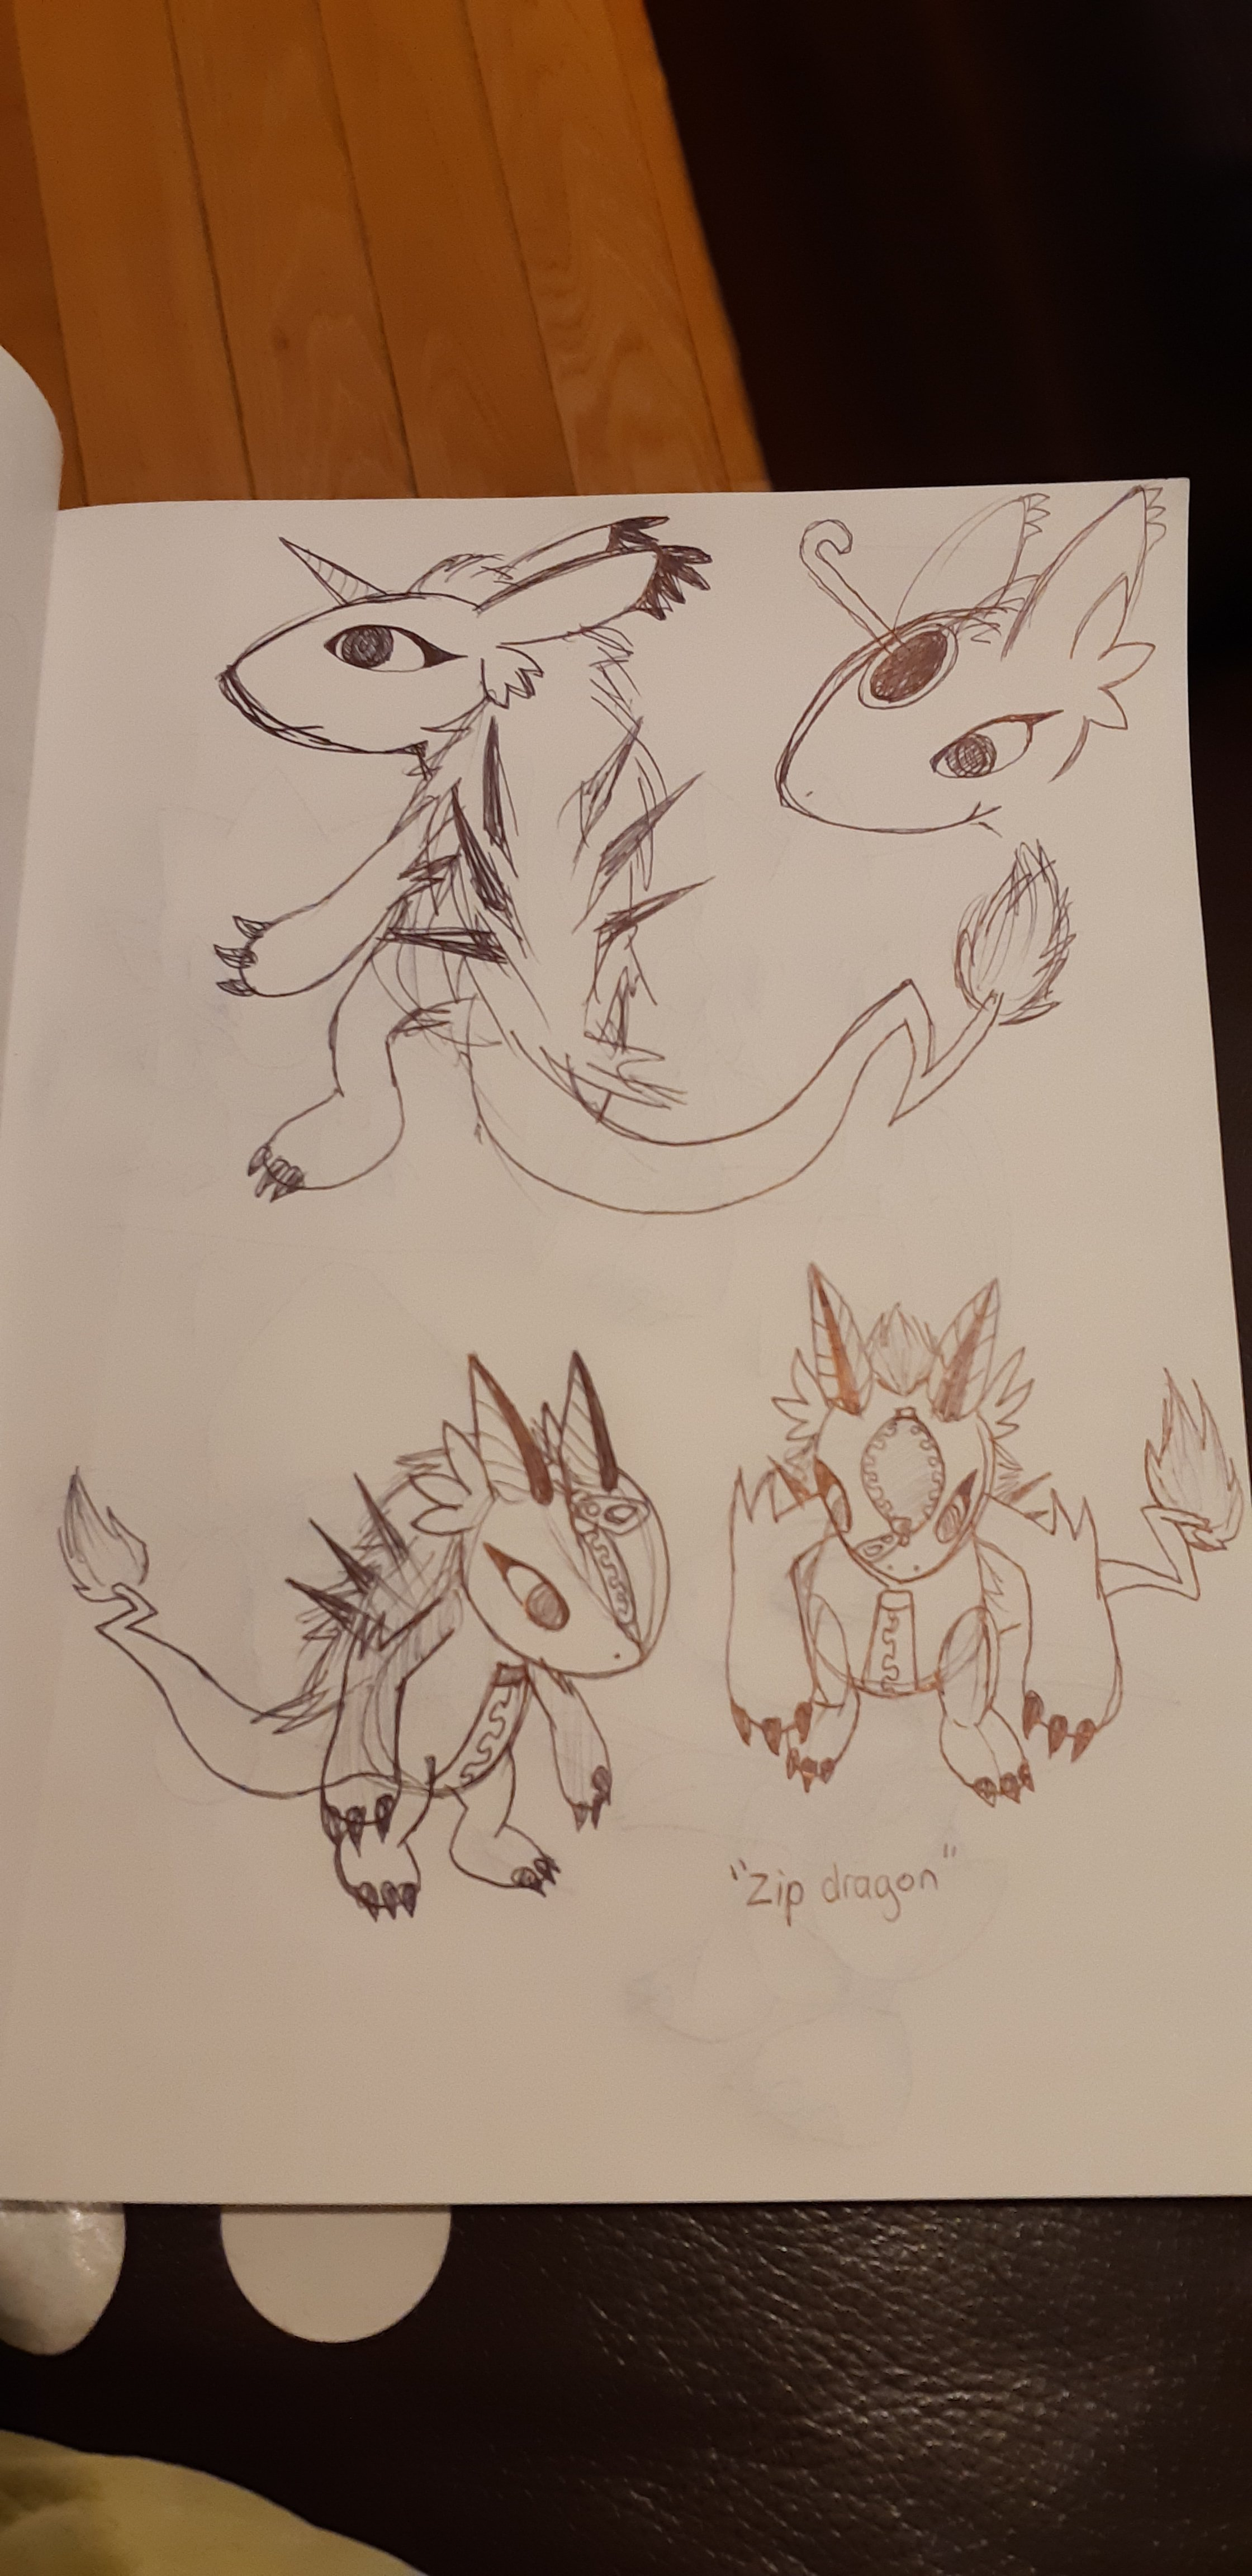 Concept sketches, depicting earlier versions of the zipper dragon. These sketches resemble the final version.